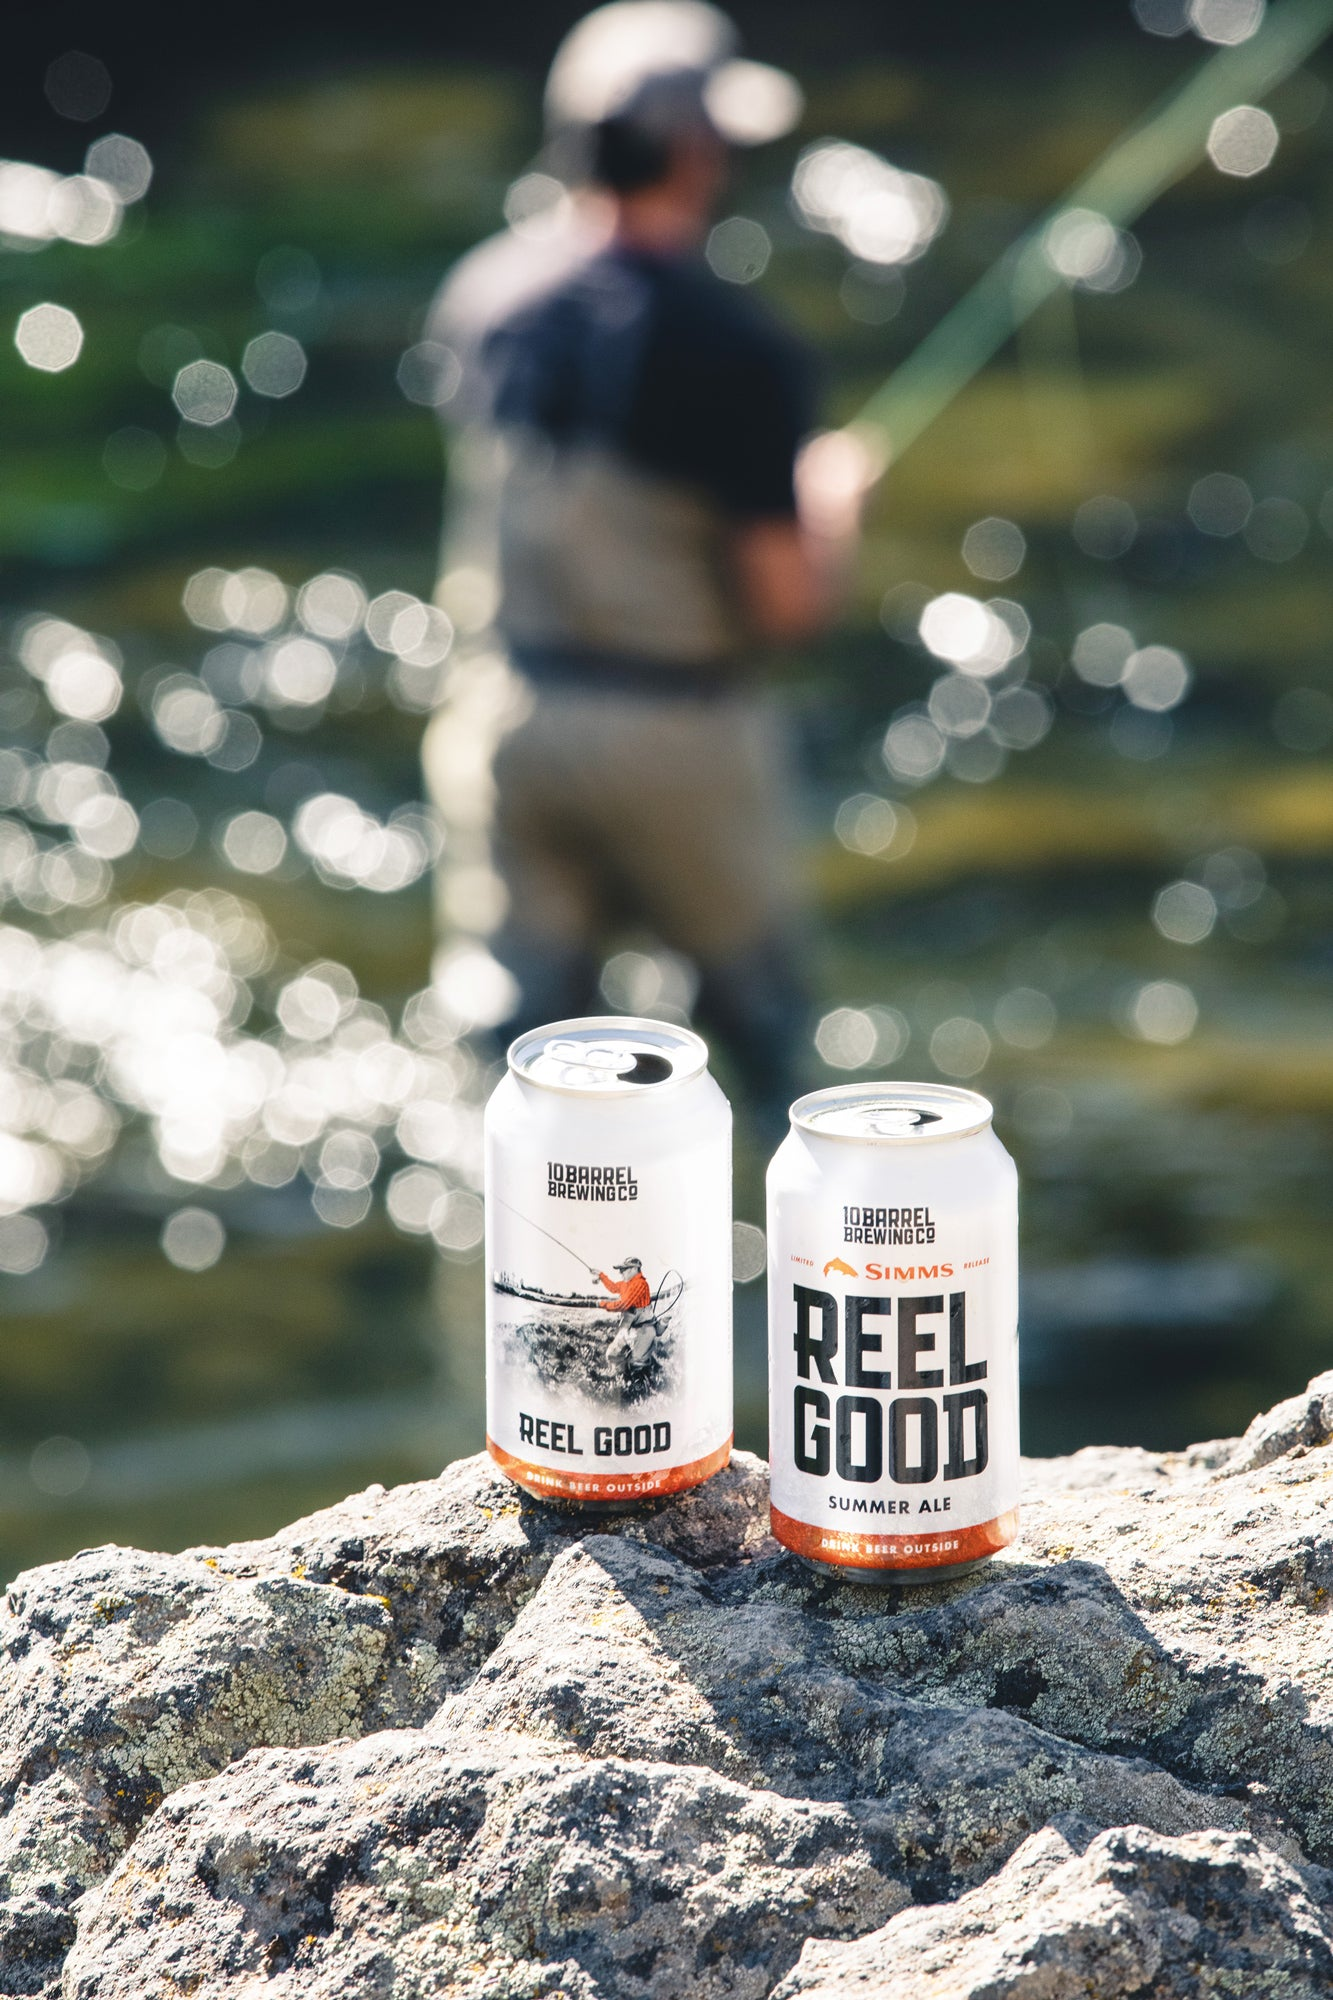 Two cans of Reel Good Summer Ale and a fisherman